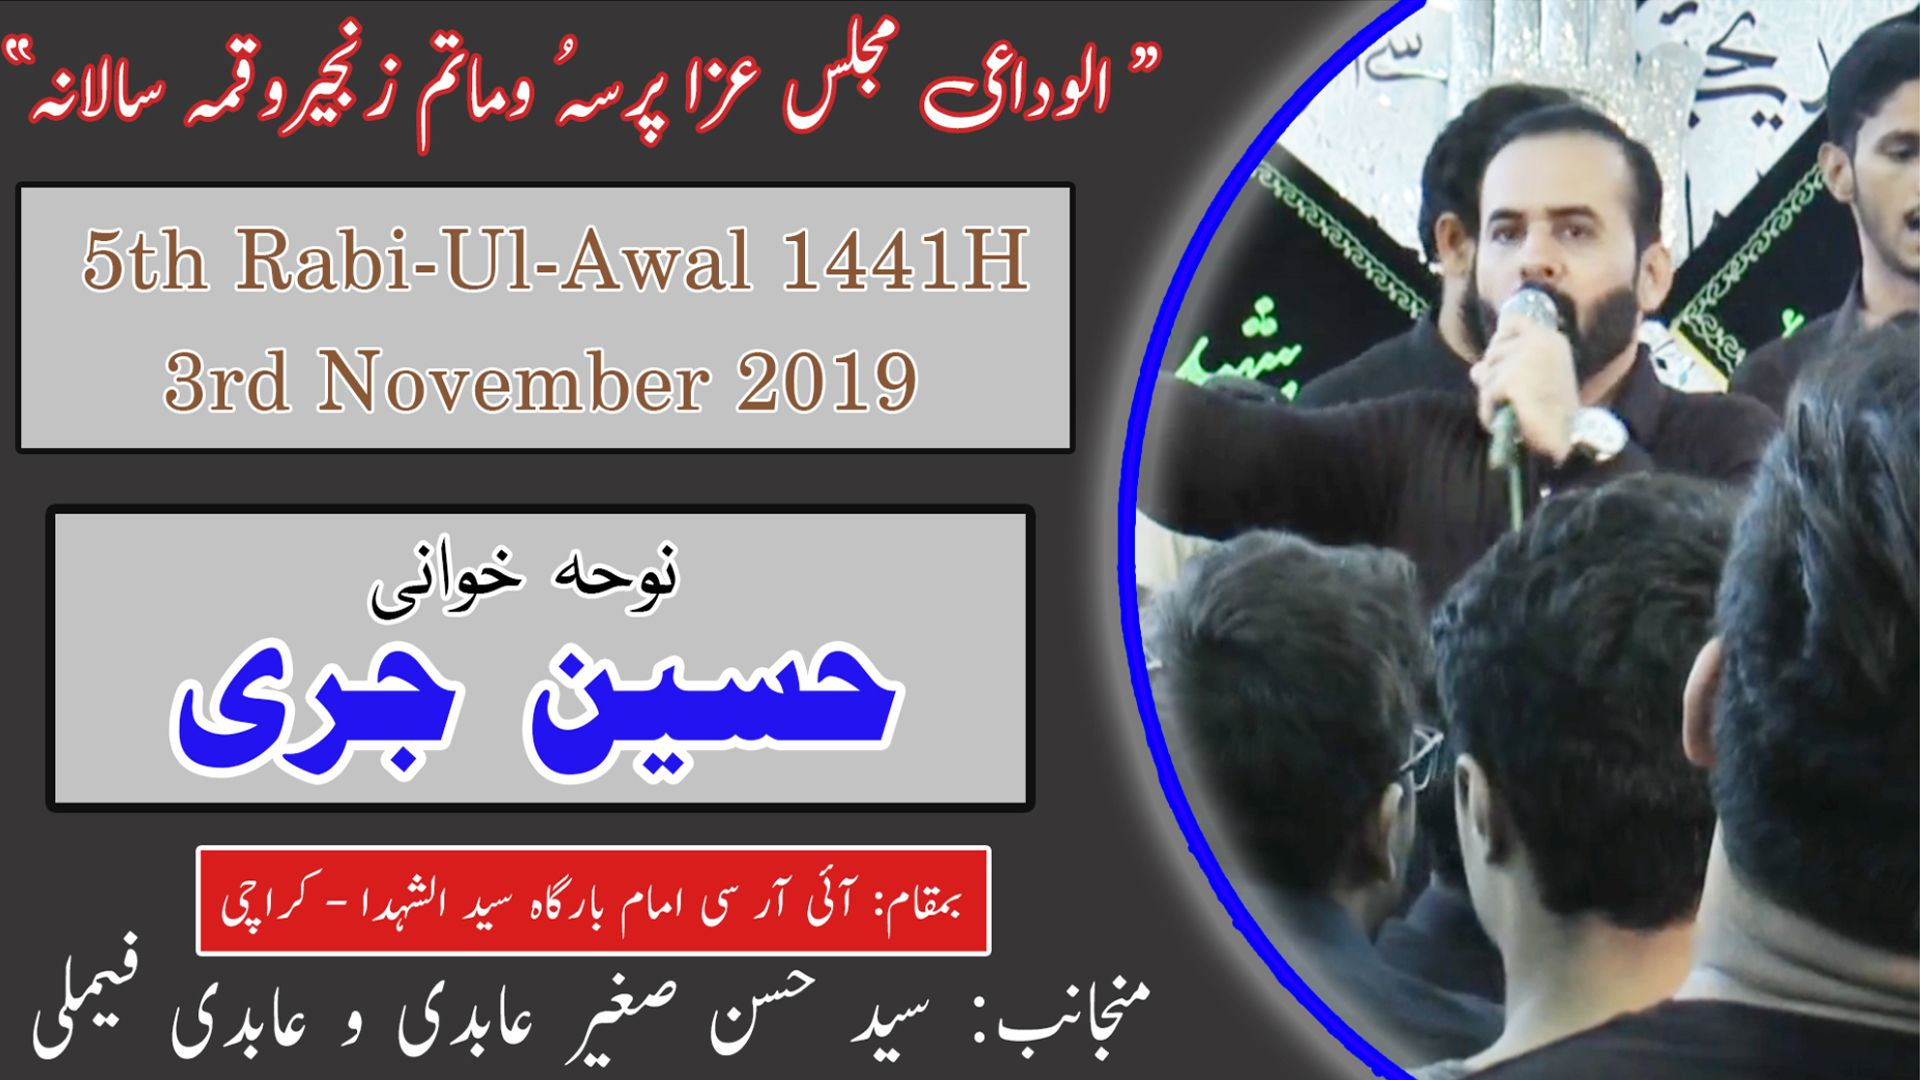 Noha | Hussain Jari | 5th Rabi Awal 1441/2019 - Imam Bargah Islamic Research Center - Karachi